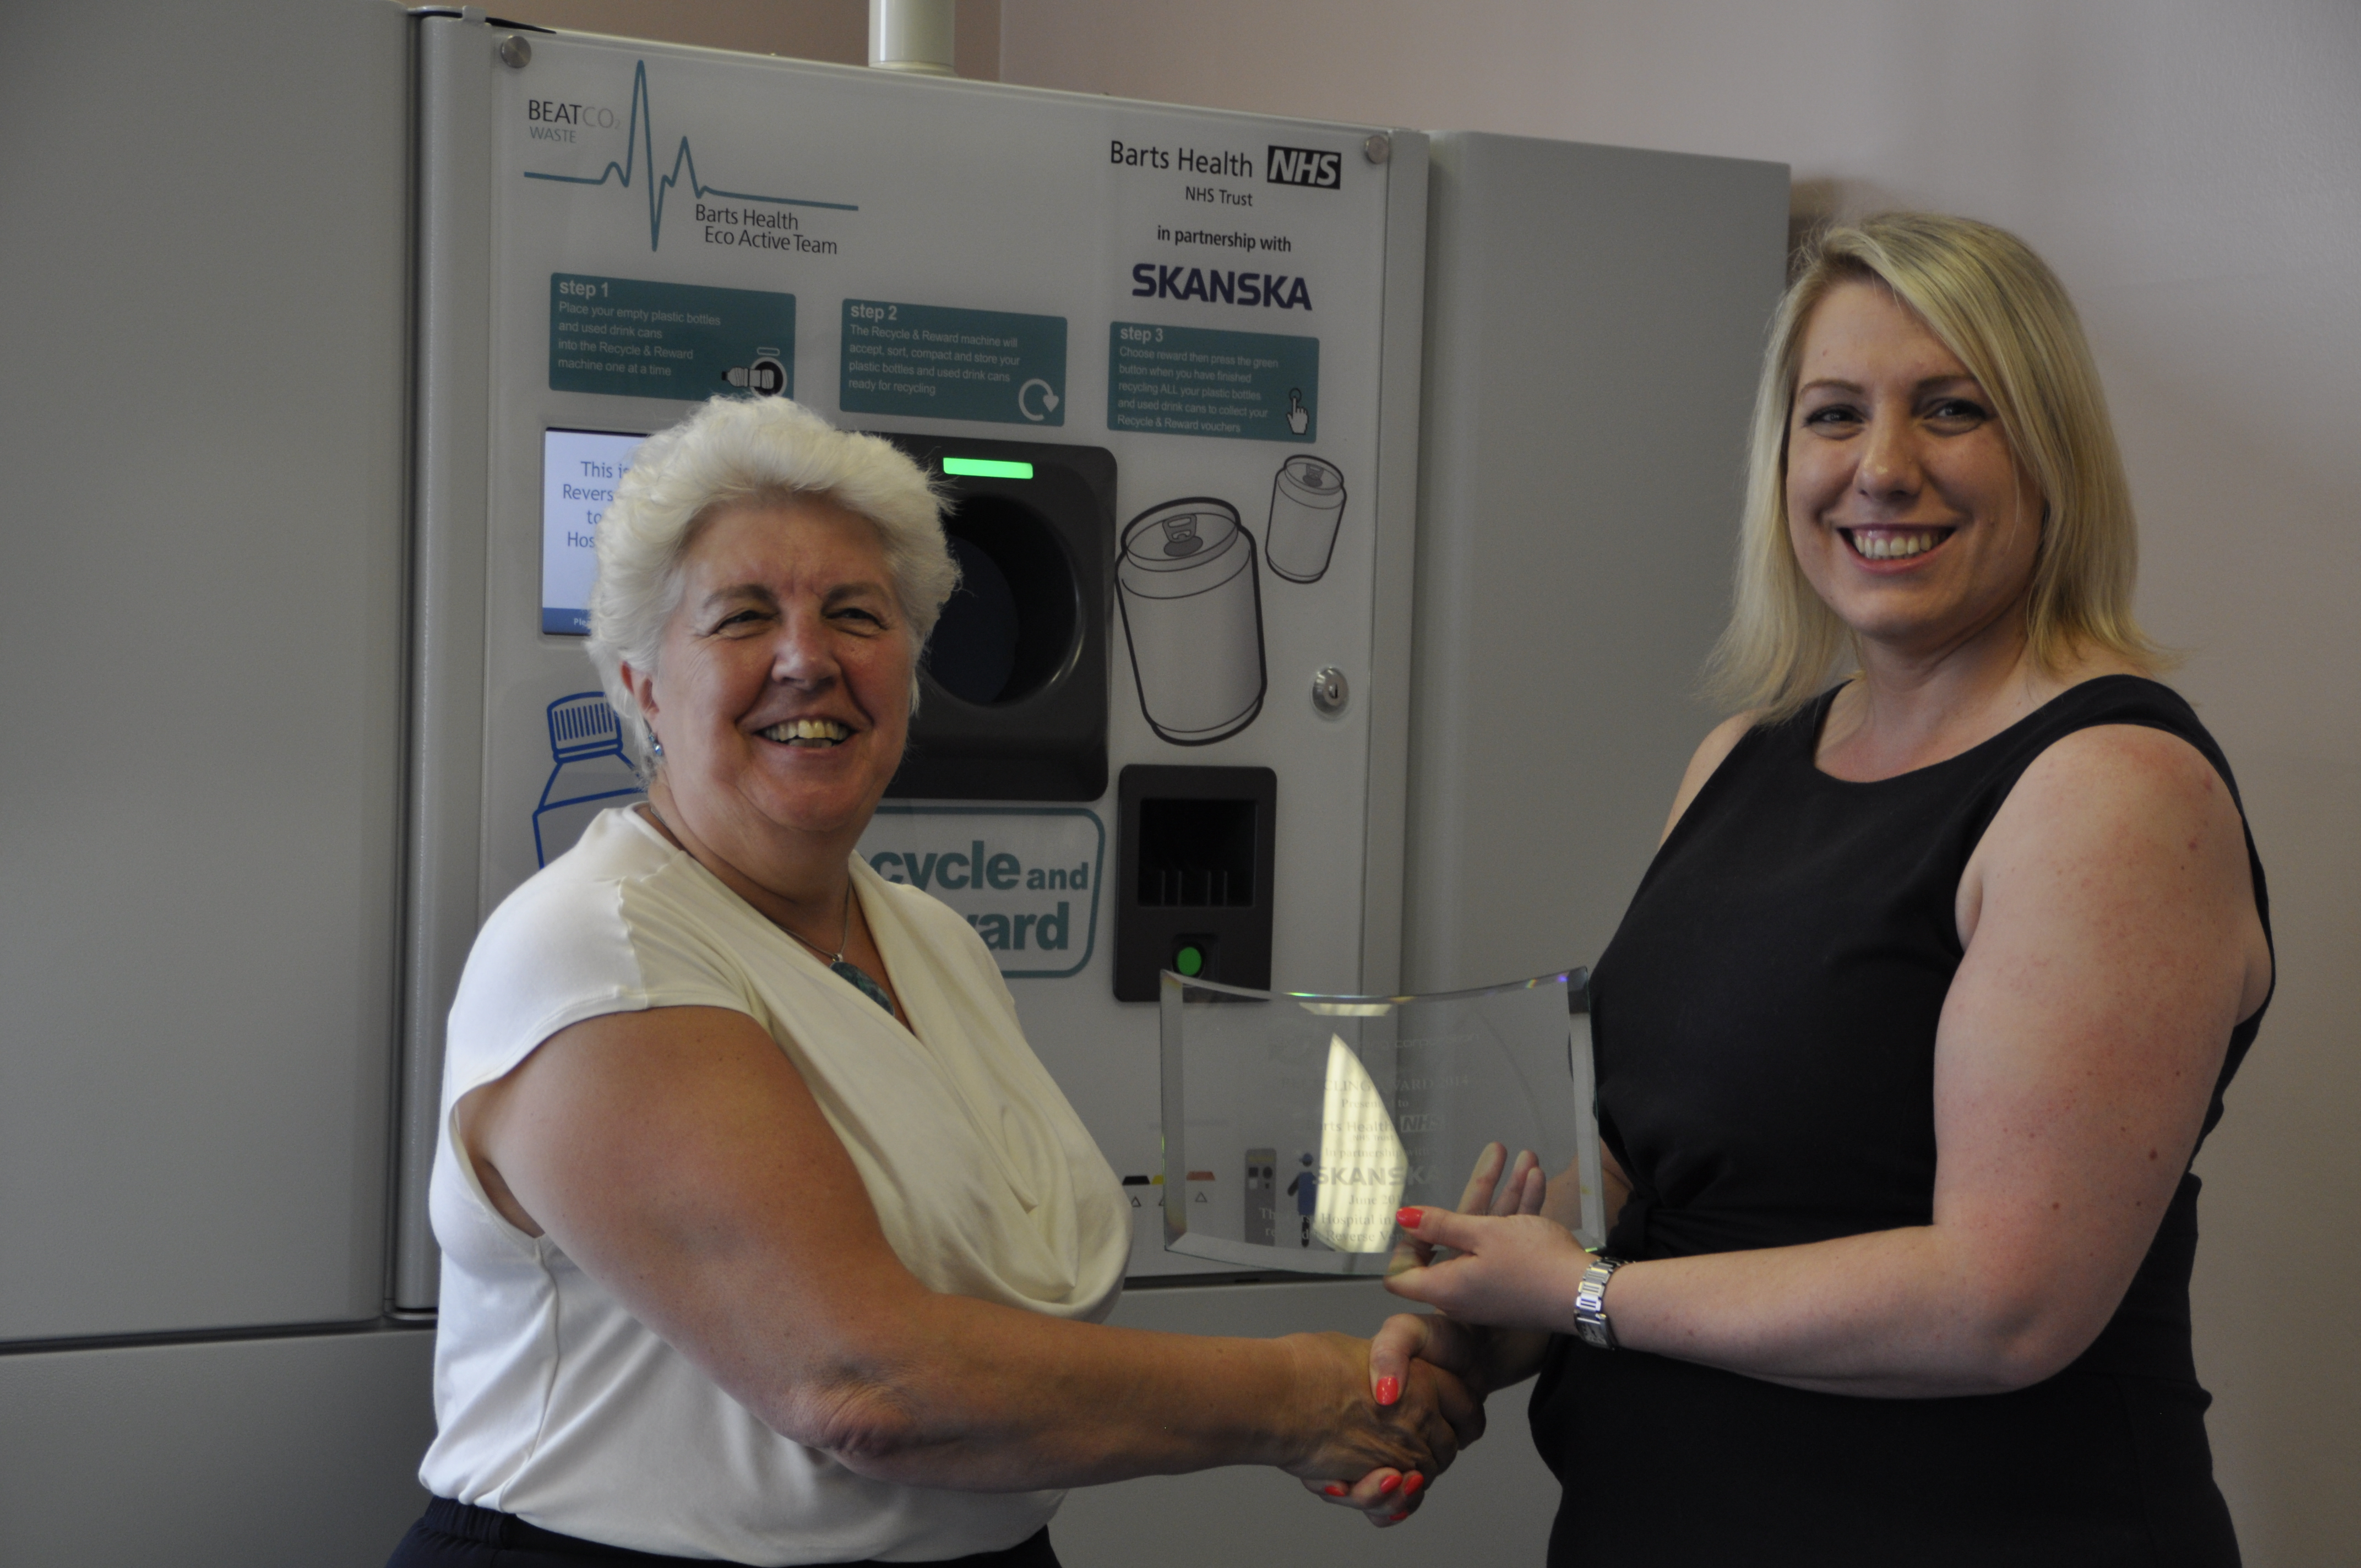 Hospital Recycling Award Barts NHS Health Trust